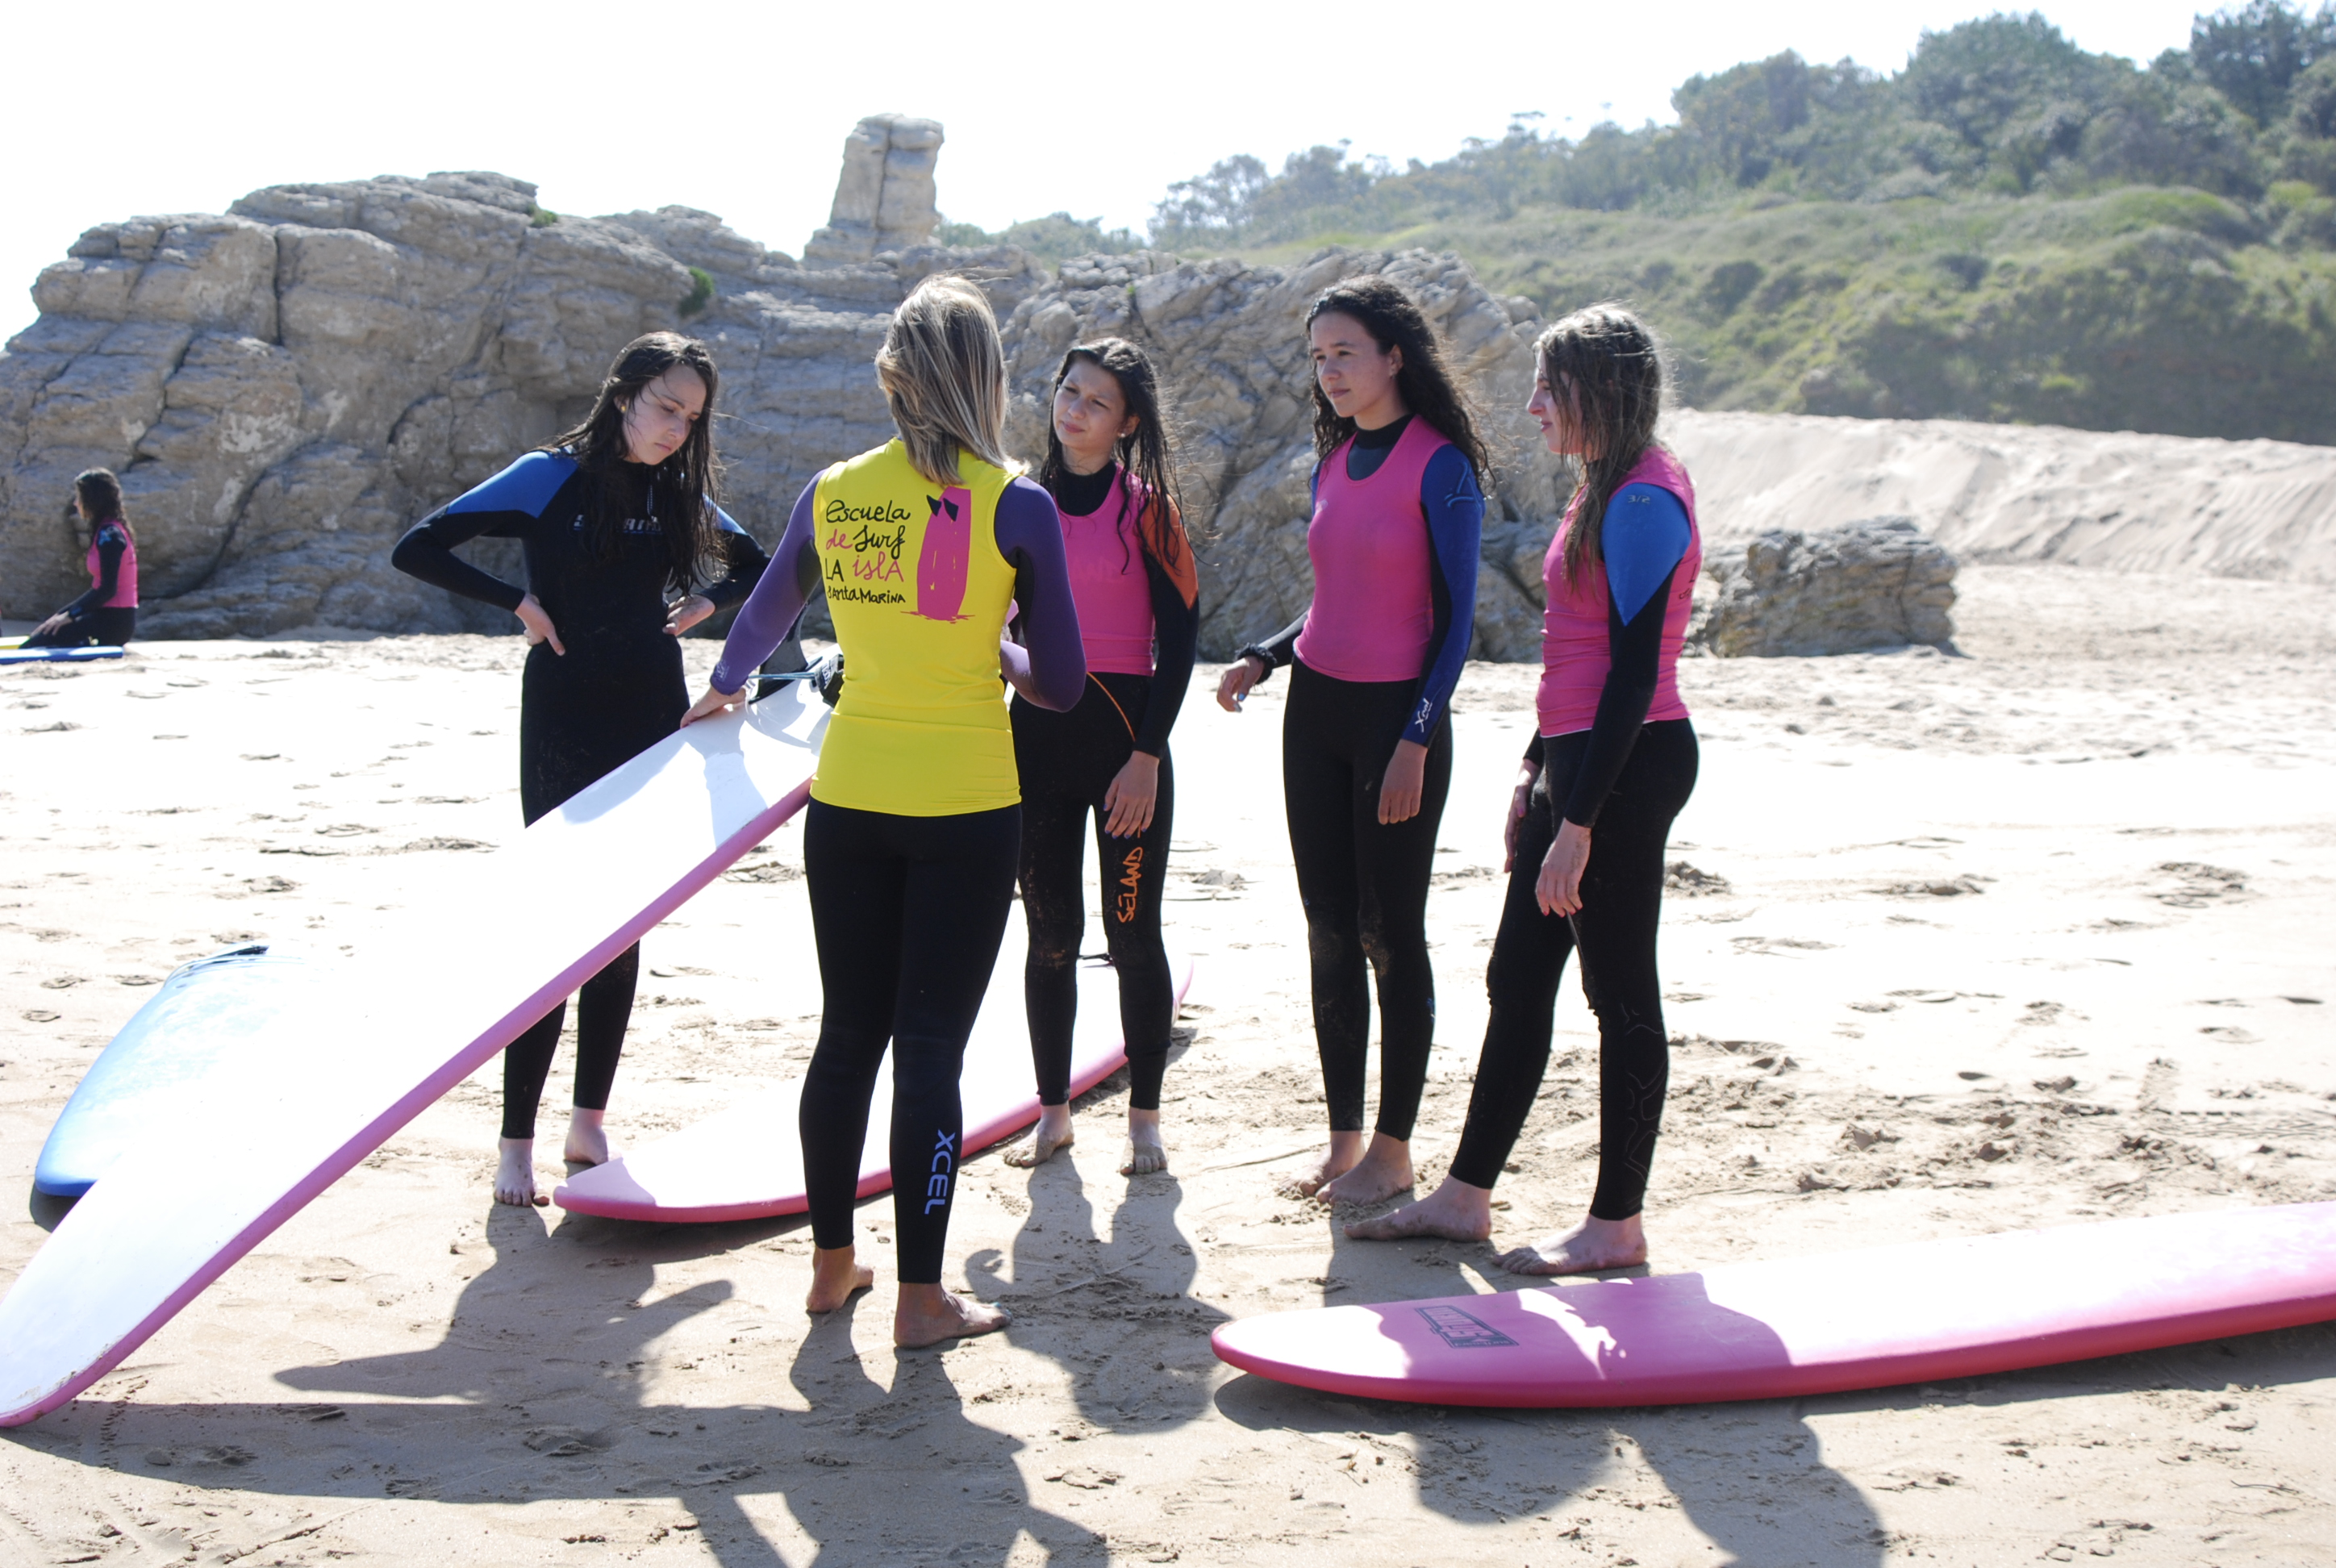 Surfcourses in the Isla Santa Marina Surf School